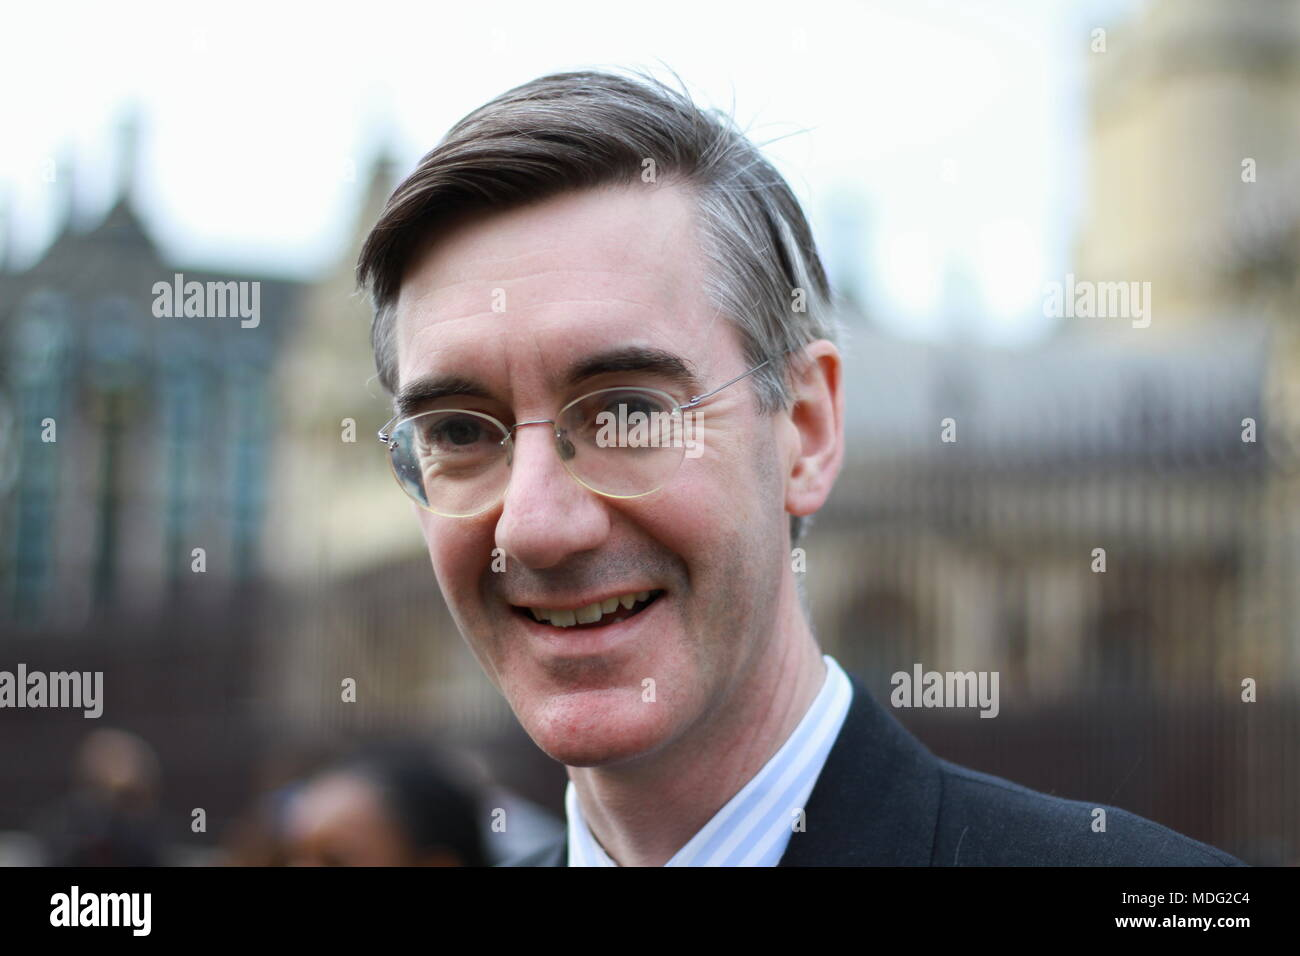 17 April 2018 Jacob Rees-Mogg posed for the photograph in Parliament Square London at the request of the photographer. British politicians. MPS. British politics. ERG. European research group. Photo credit Russell Moore. - Stock Image